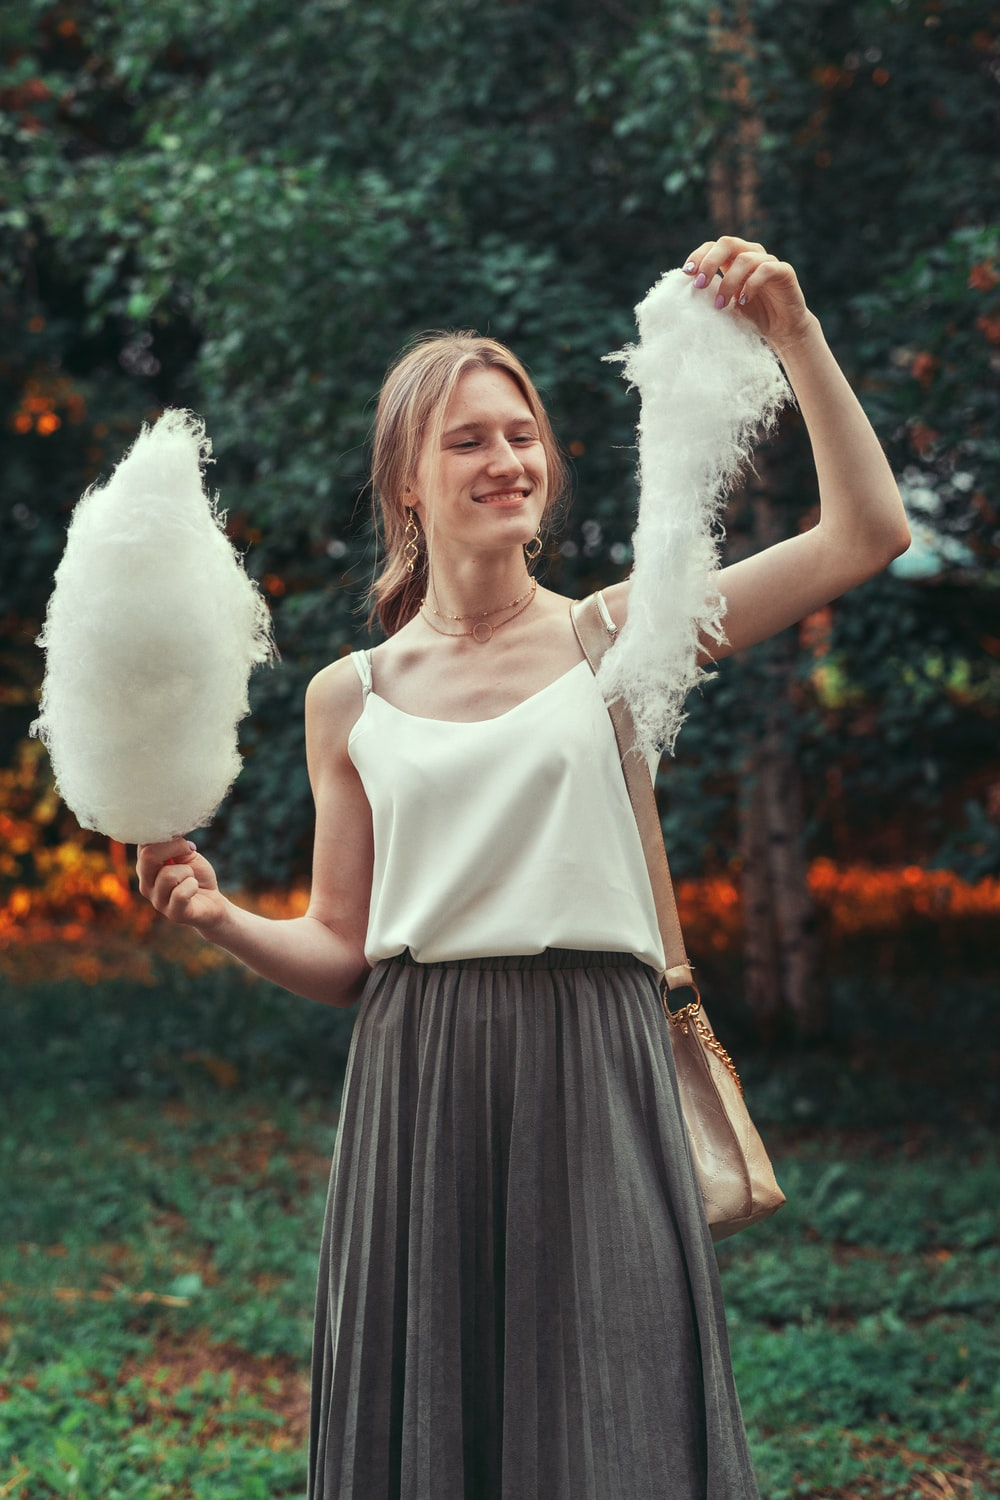 woman in white tank top and black skirt holding white cotton candy